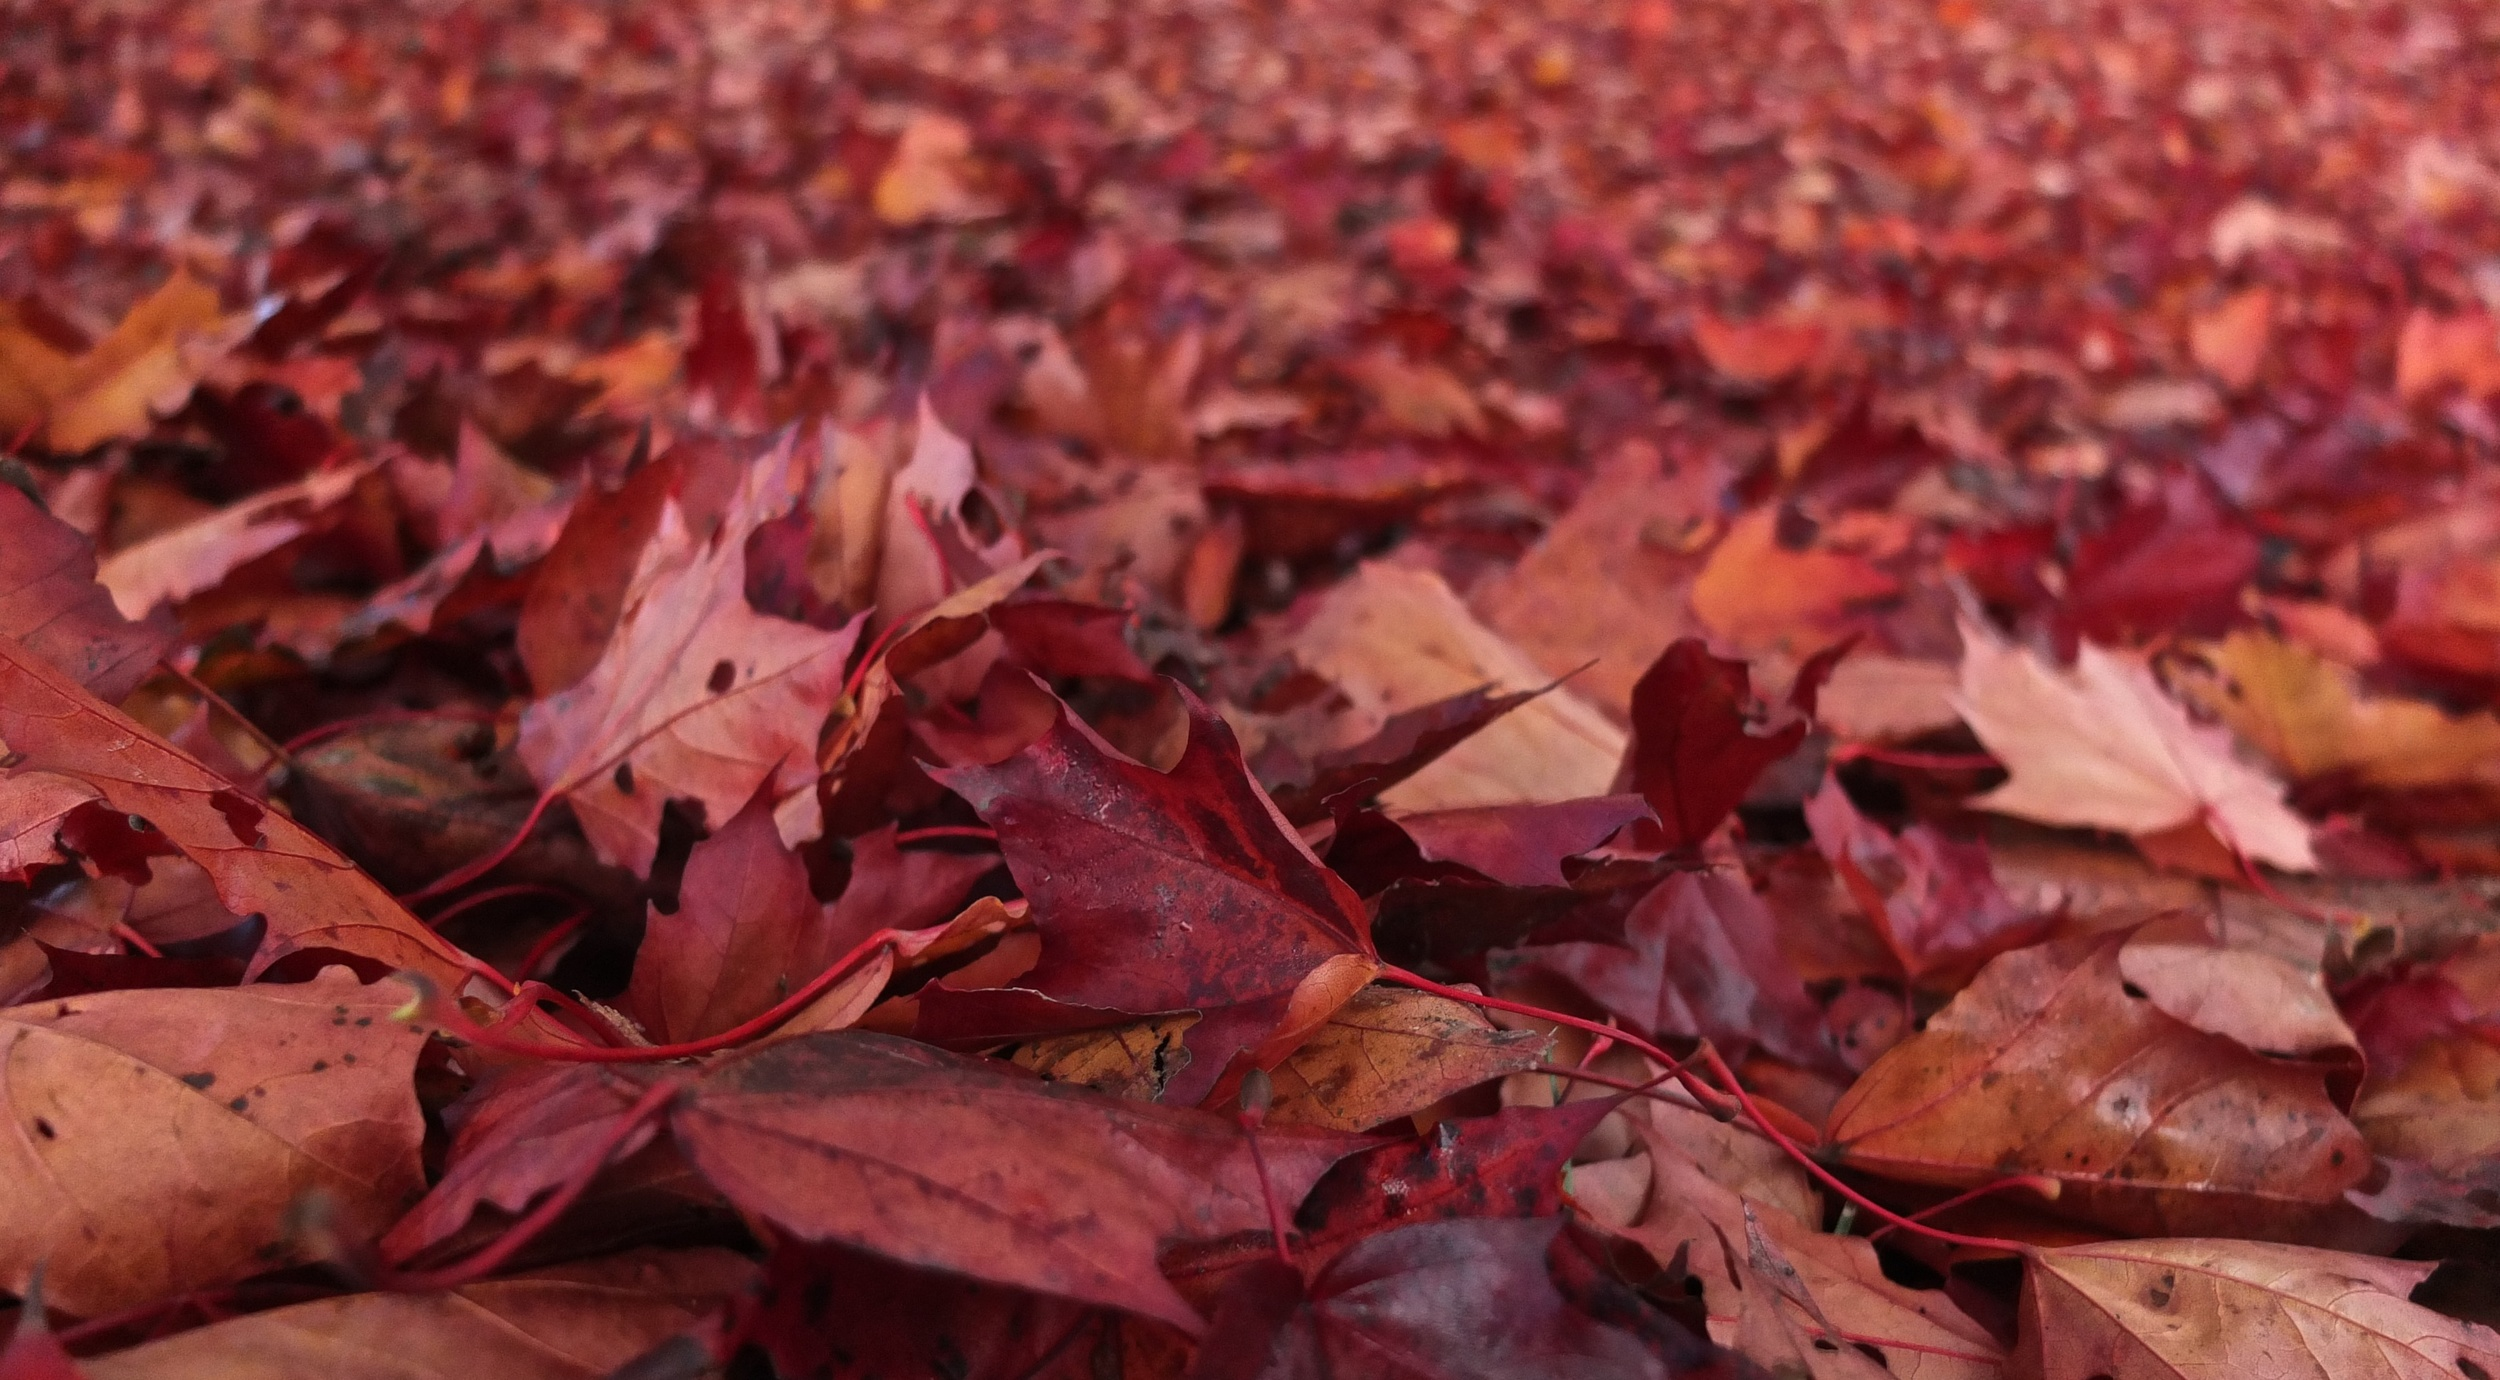 A field of red autumn foliage.  Fuji X10 at 7mm f/2 1/800 ISO 400 −1ev